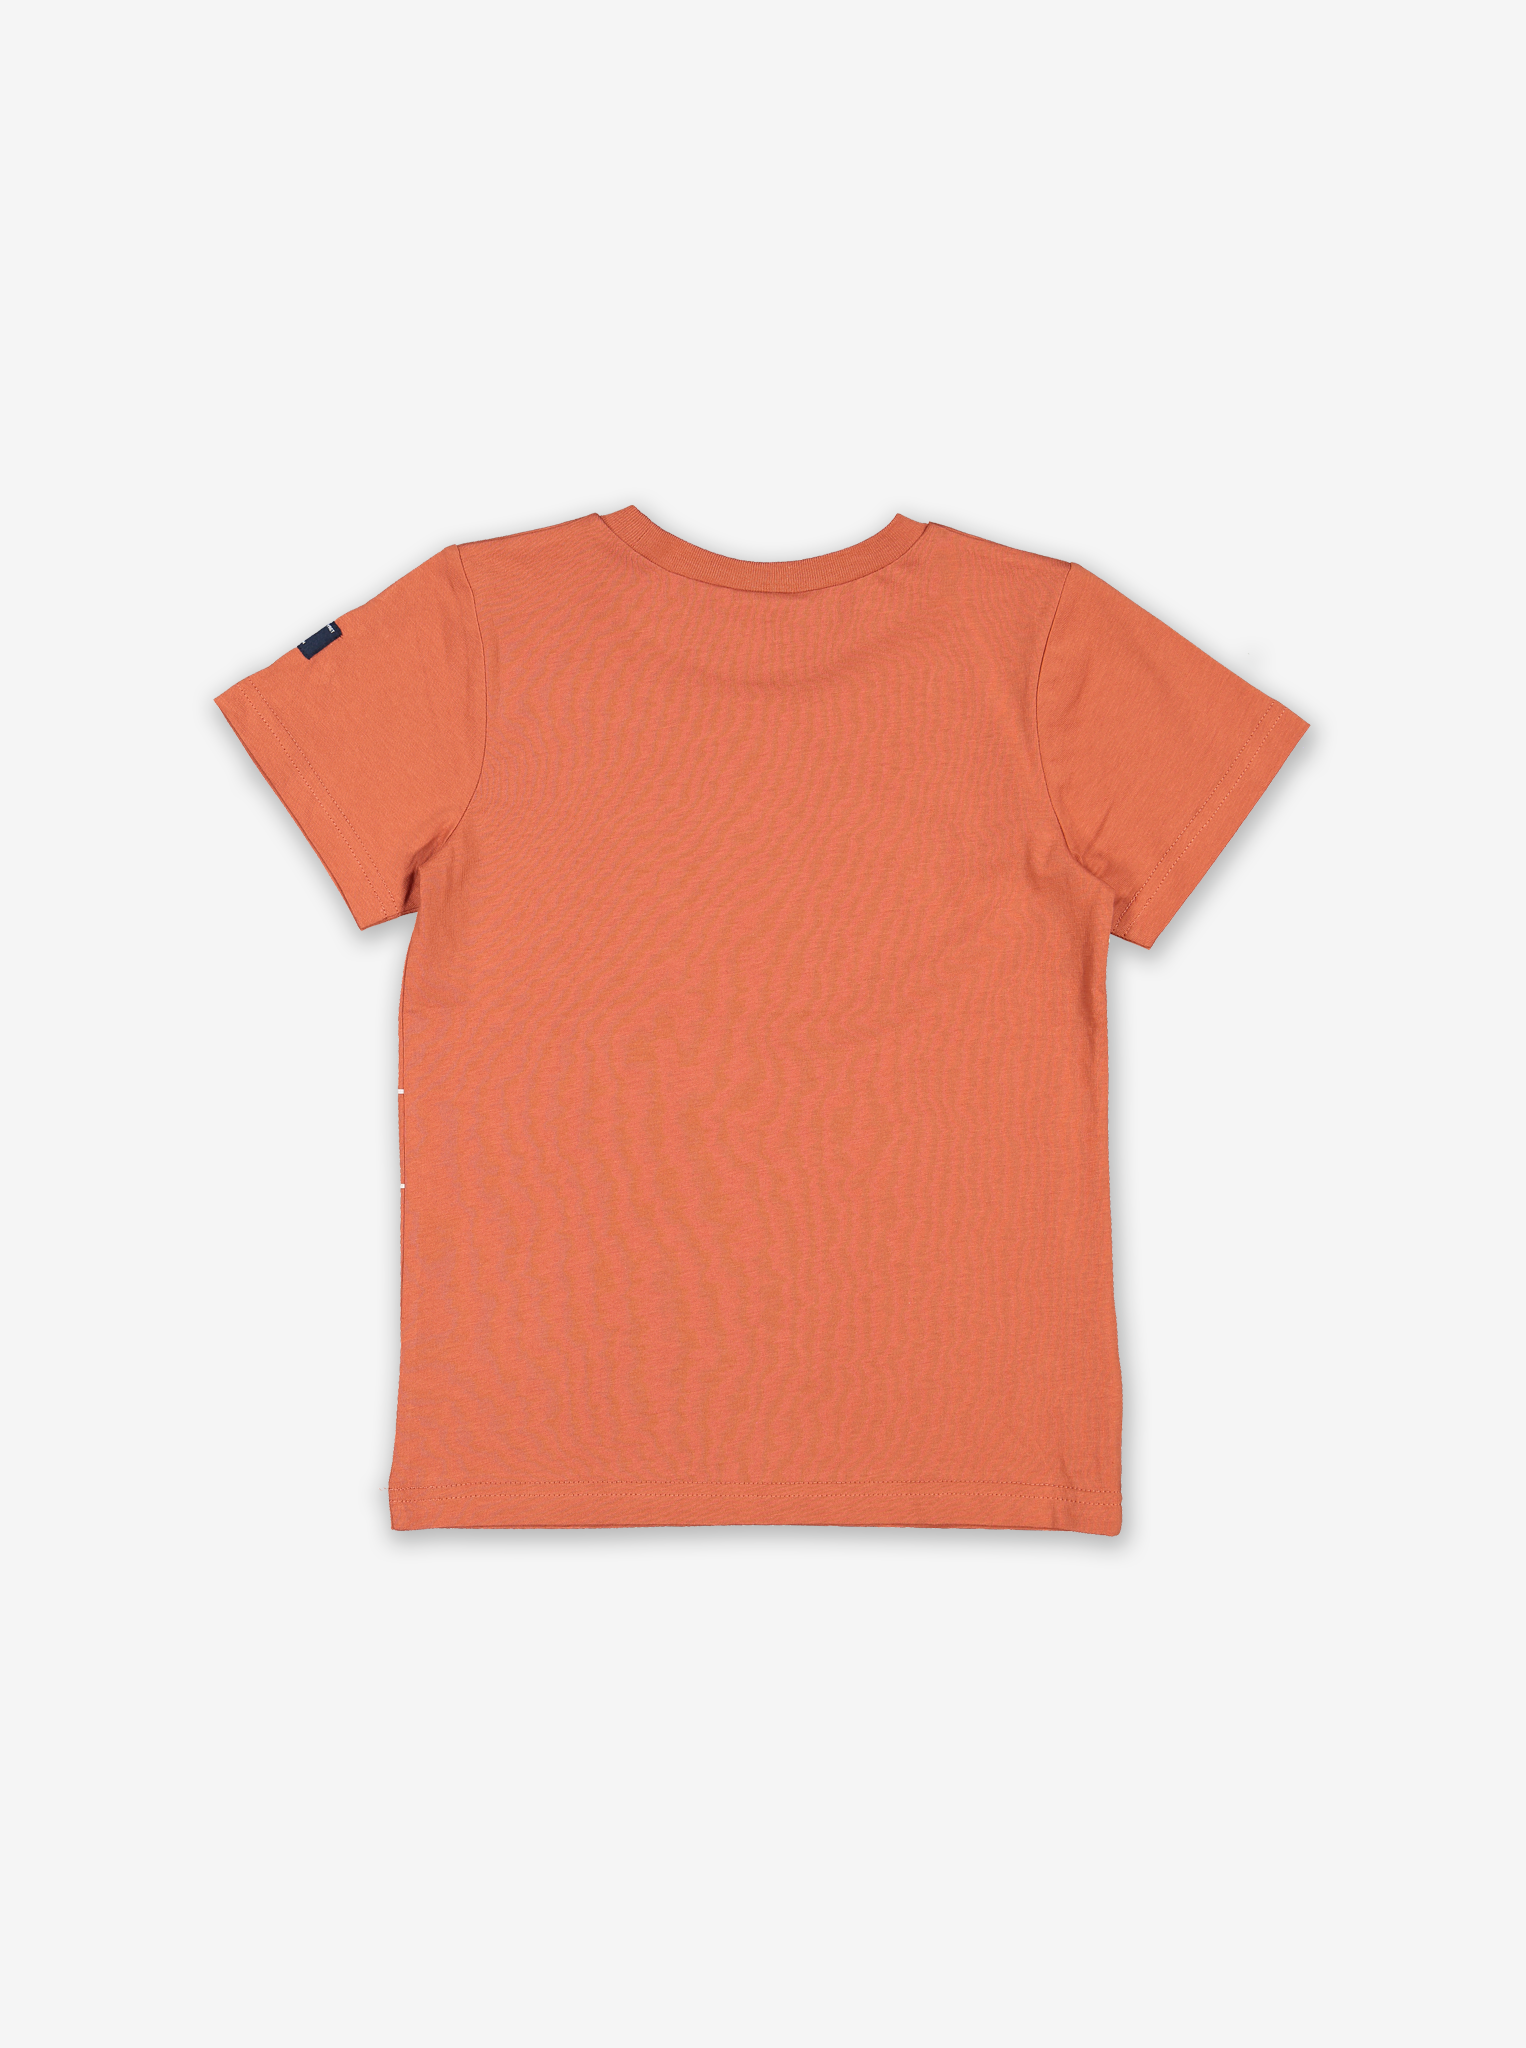 Organic Kids T-Shirt-Unisex-1-6y-Orange